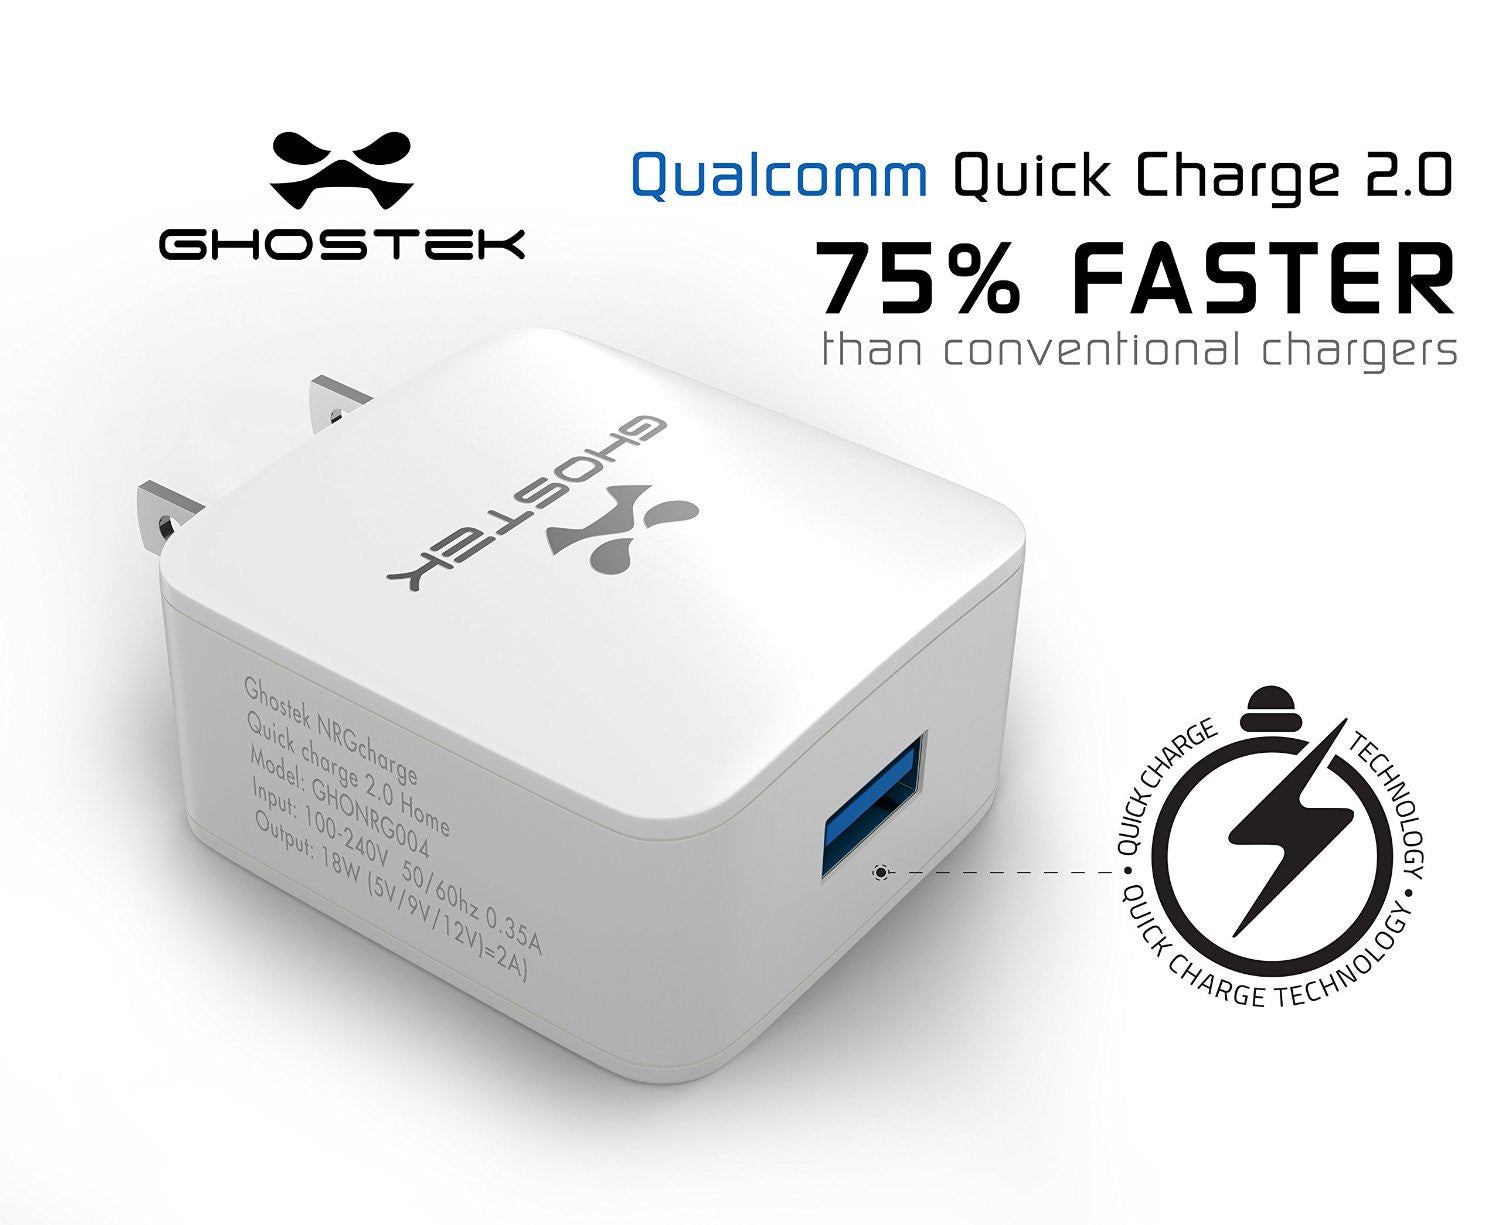 NRGcharge QuickCharge 2.0 Rapid High-speed Fast Wall Home White Charger w/ Micro USB Cable